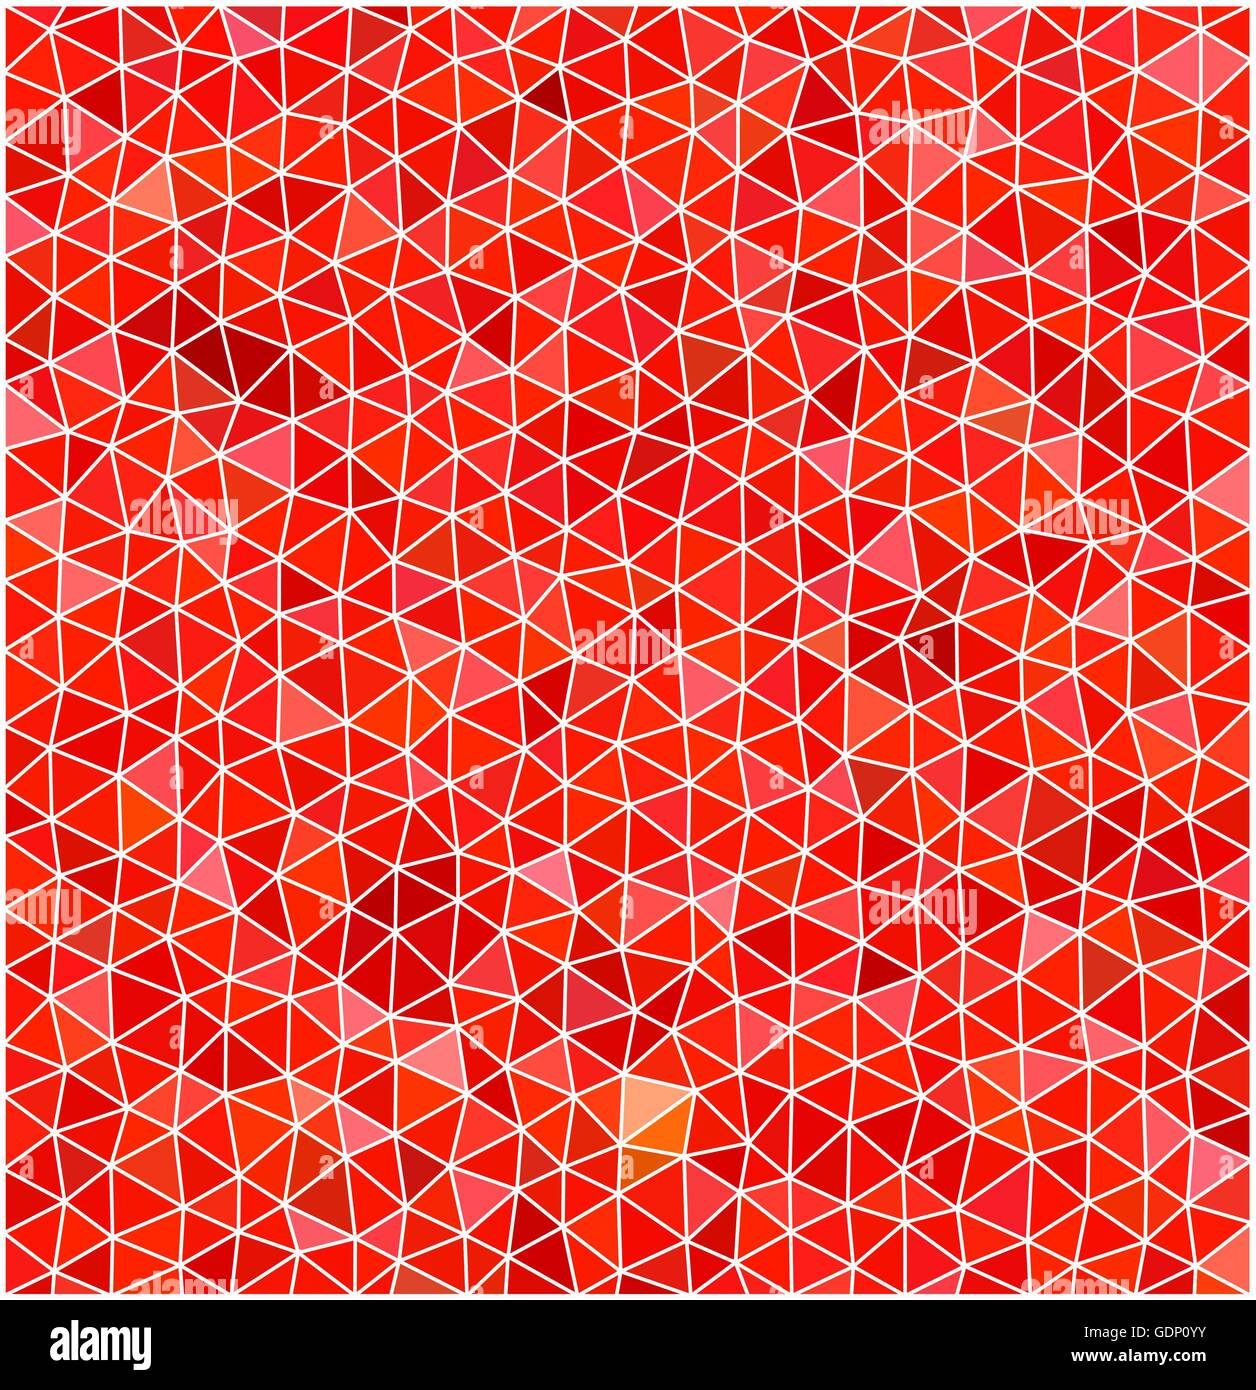 Red Stained Glass : Abstract red triangles stained glass texture with white